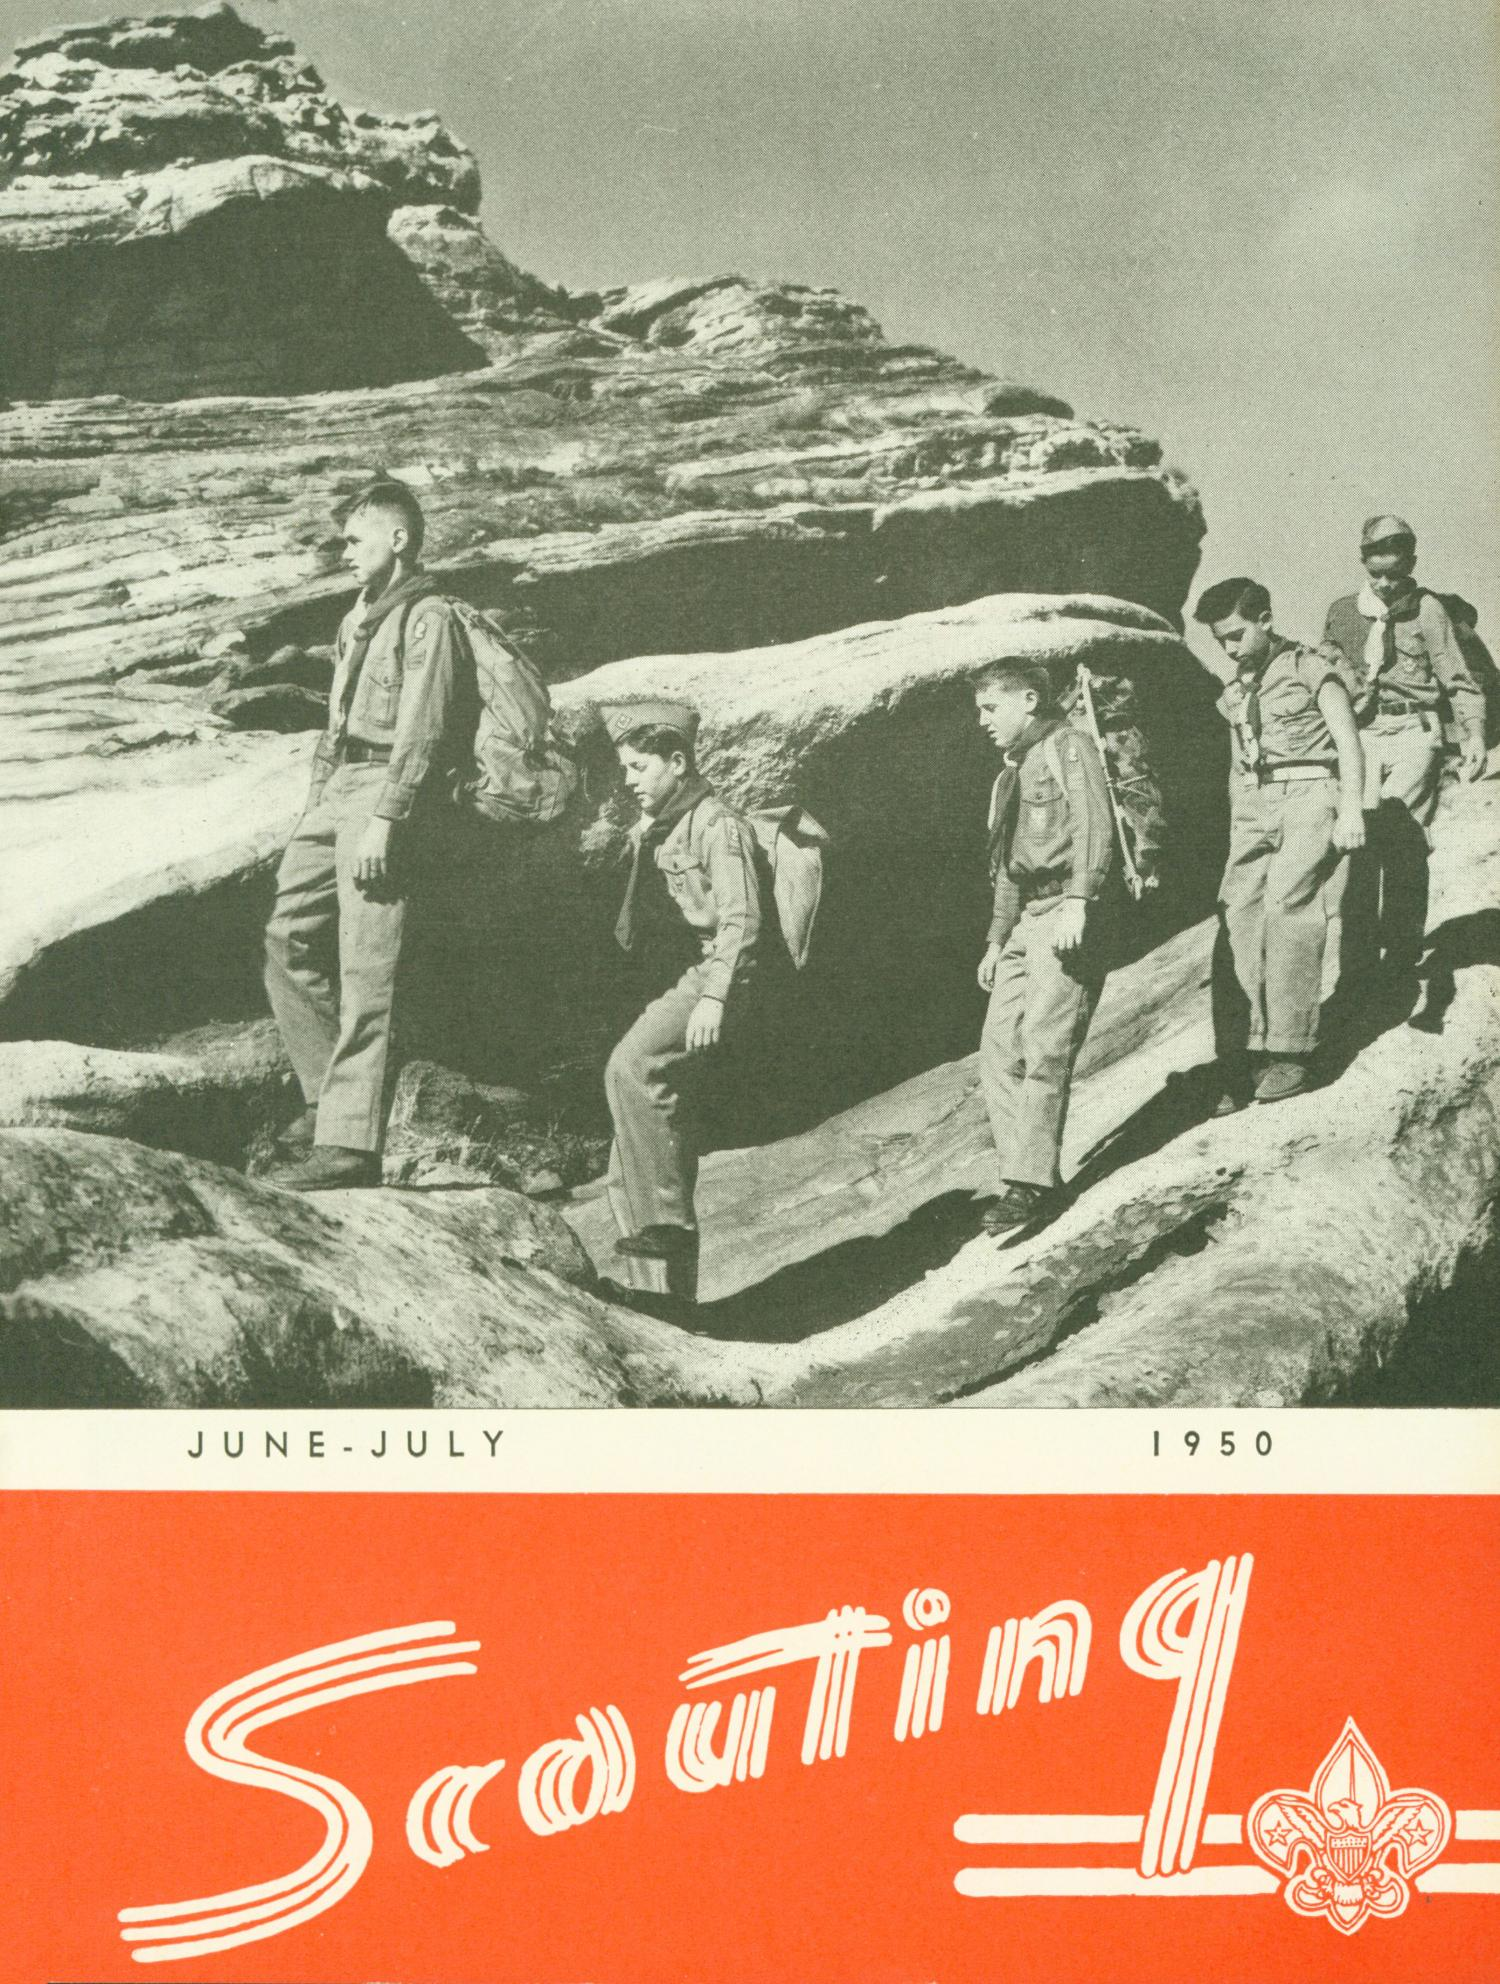 Scouting, Volume 38, Number 6, June-July 1950                                                                                                      Front Cover